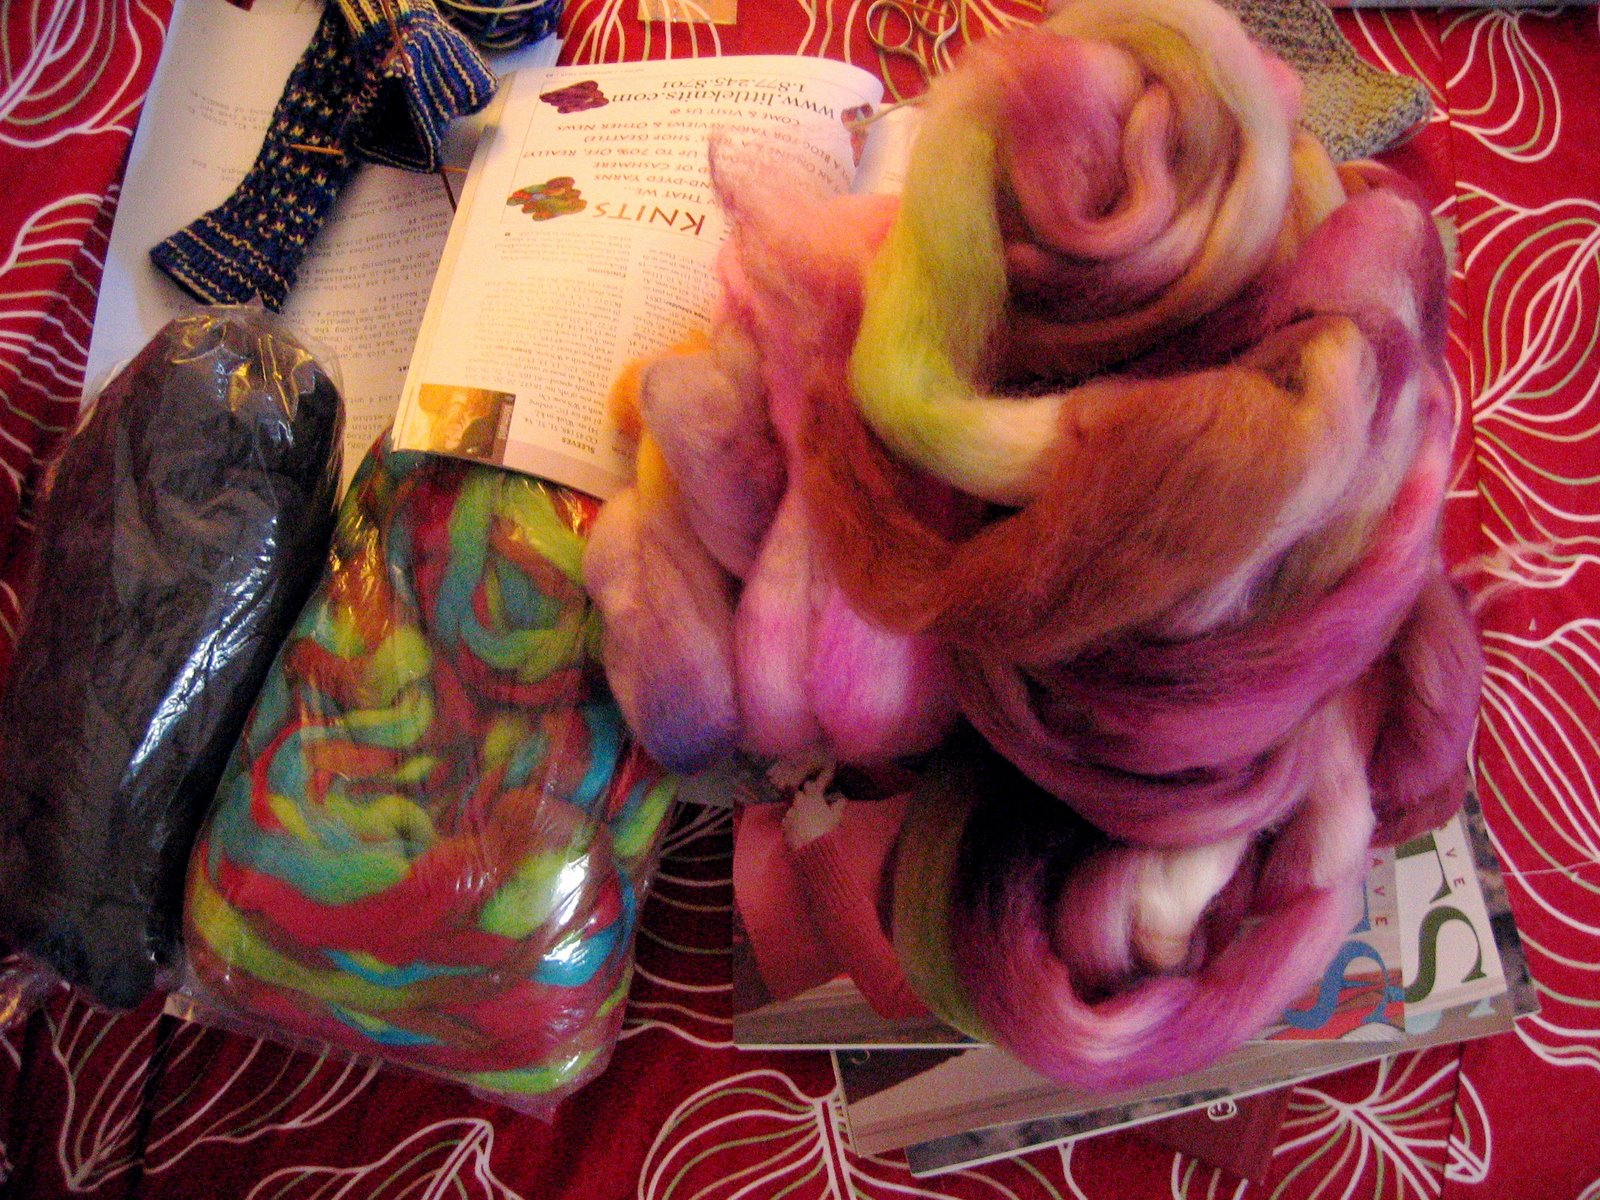 [It's+taking+over...+wool+roving+drafted+and+ready+for+knitting]